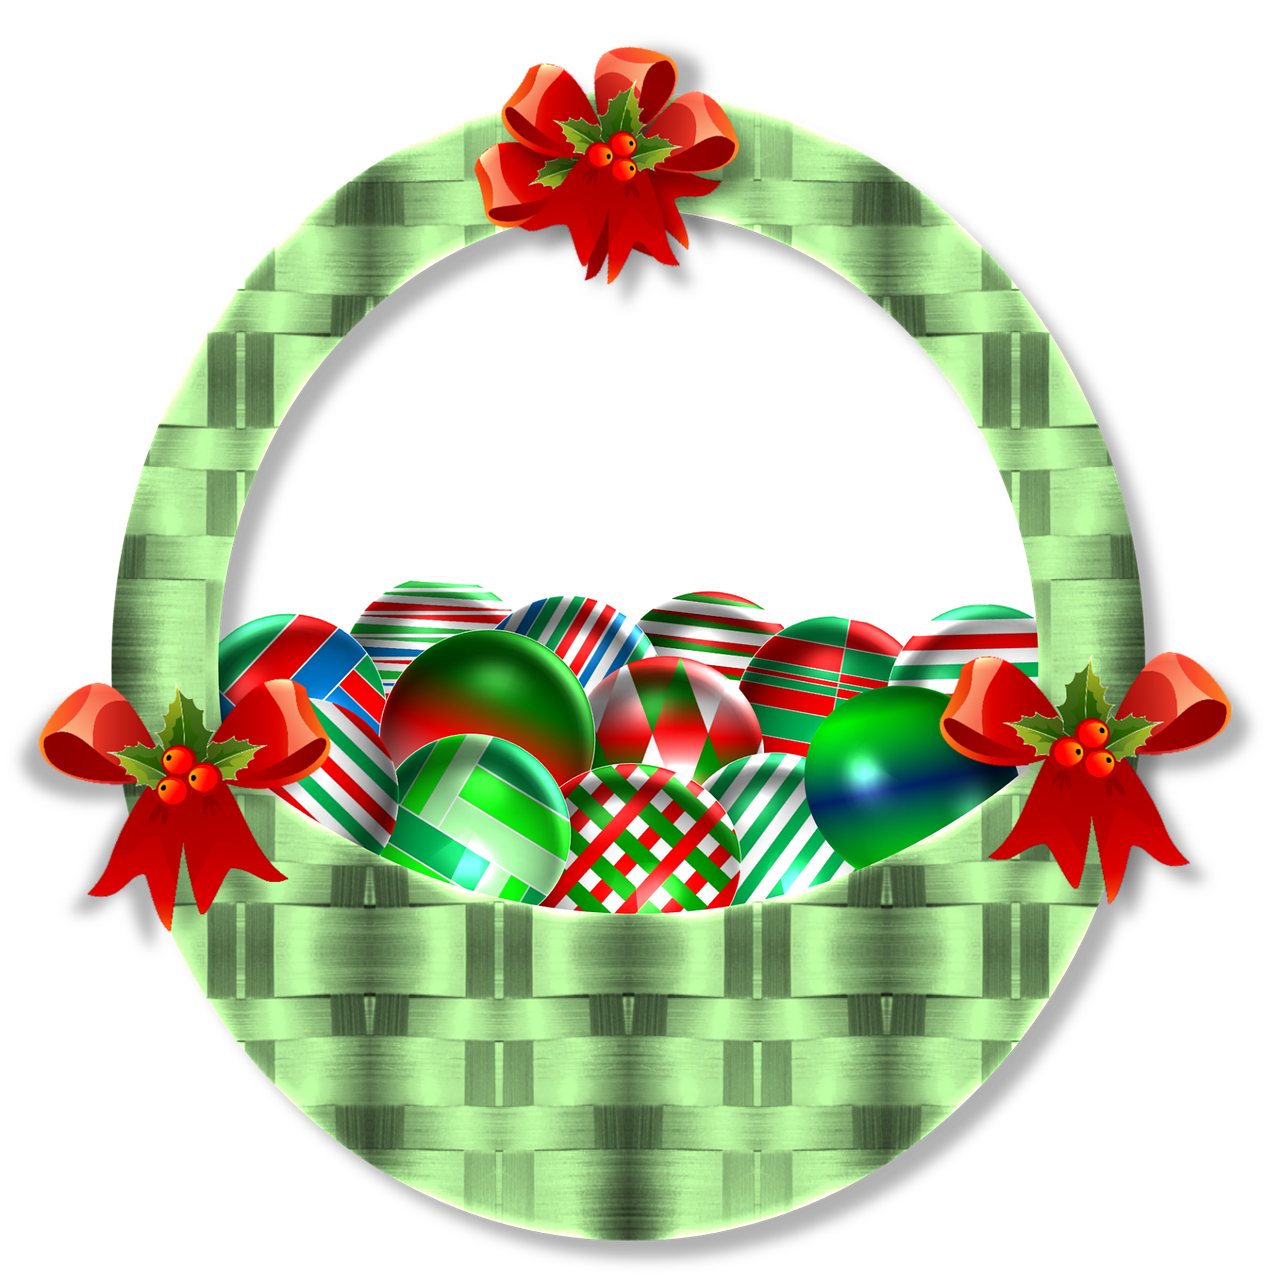 Holly clipart hampers. Home decor christmas basket